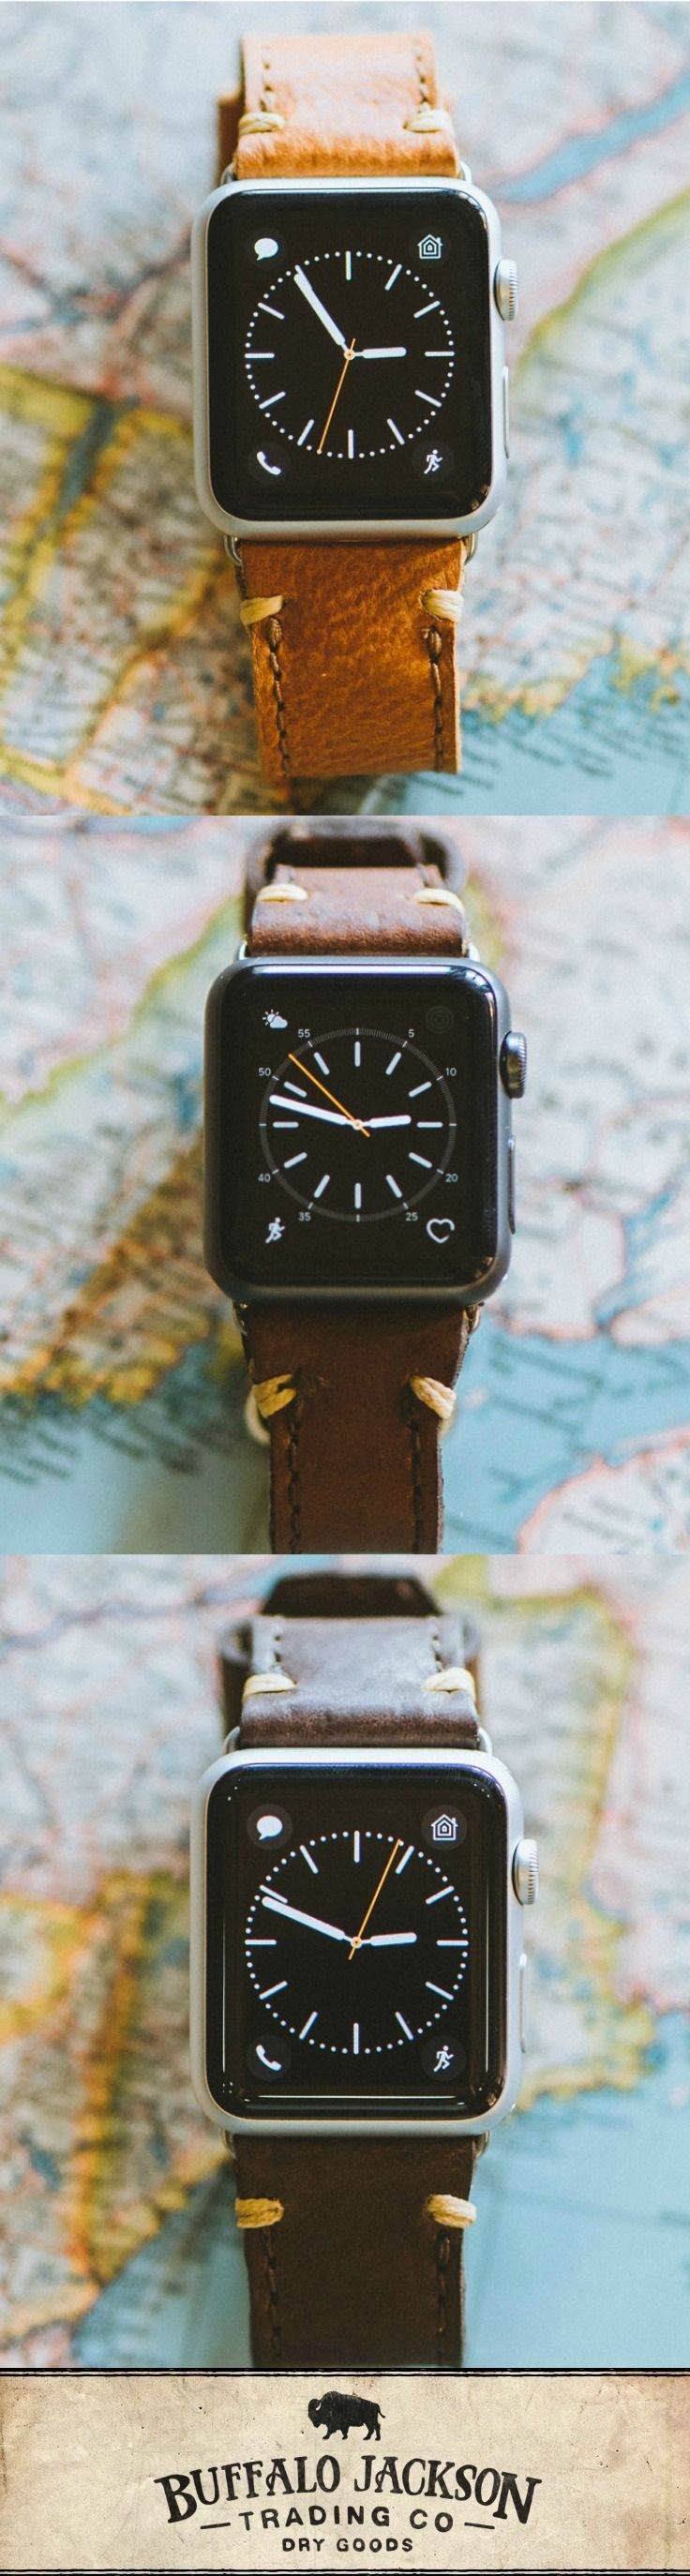 "Bring handmade vintage style to your Apple watch with a quality leather band. Our process tans the leather perfectly for a rugged look and luxury feel. Available in saddle tan, brown, and dark brown, it's one of our favorite men's products right now. This is an Apple watch strap for men who know ""honoring the past"" doesn't require ""living in the past."""